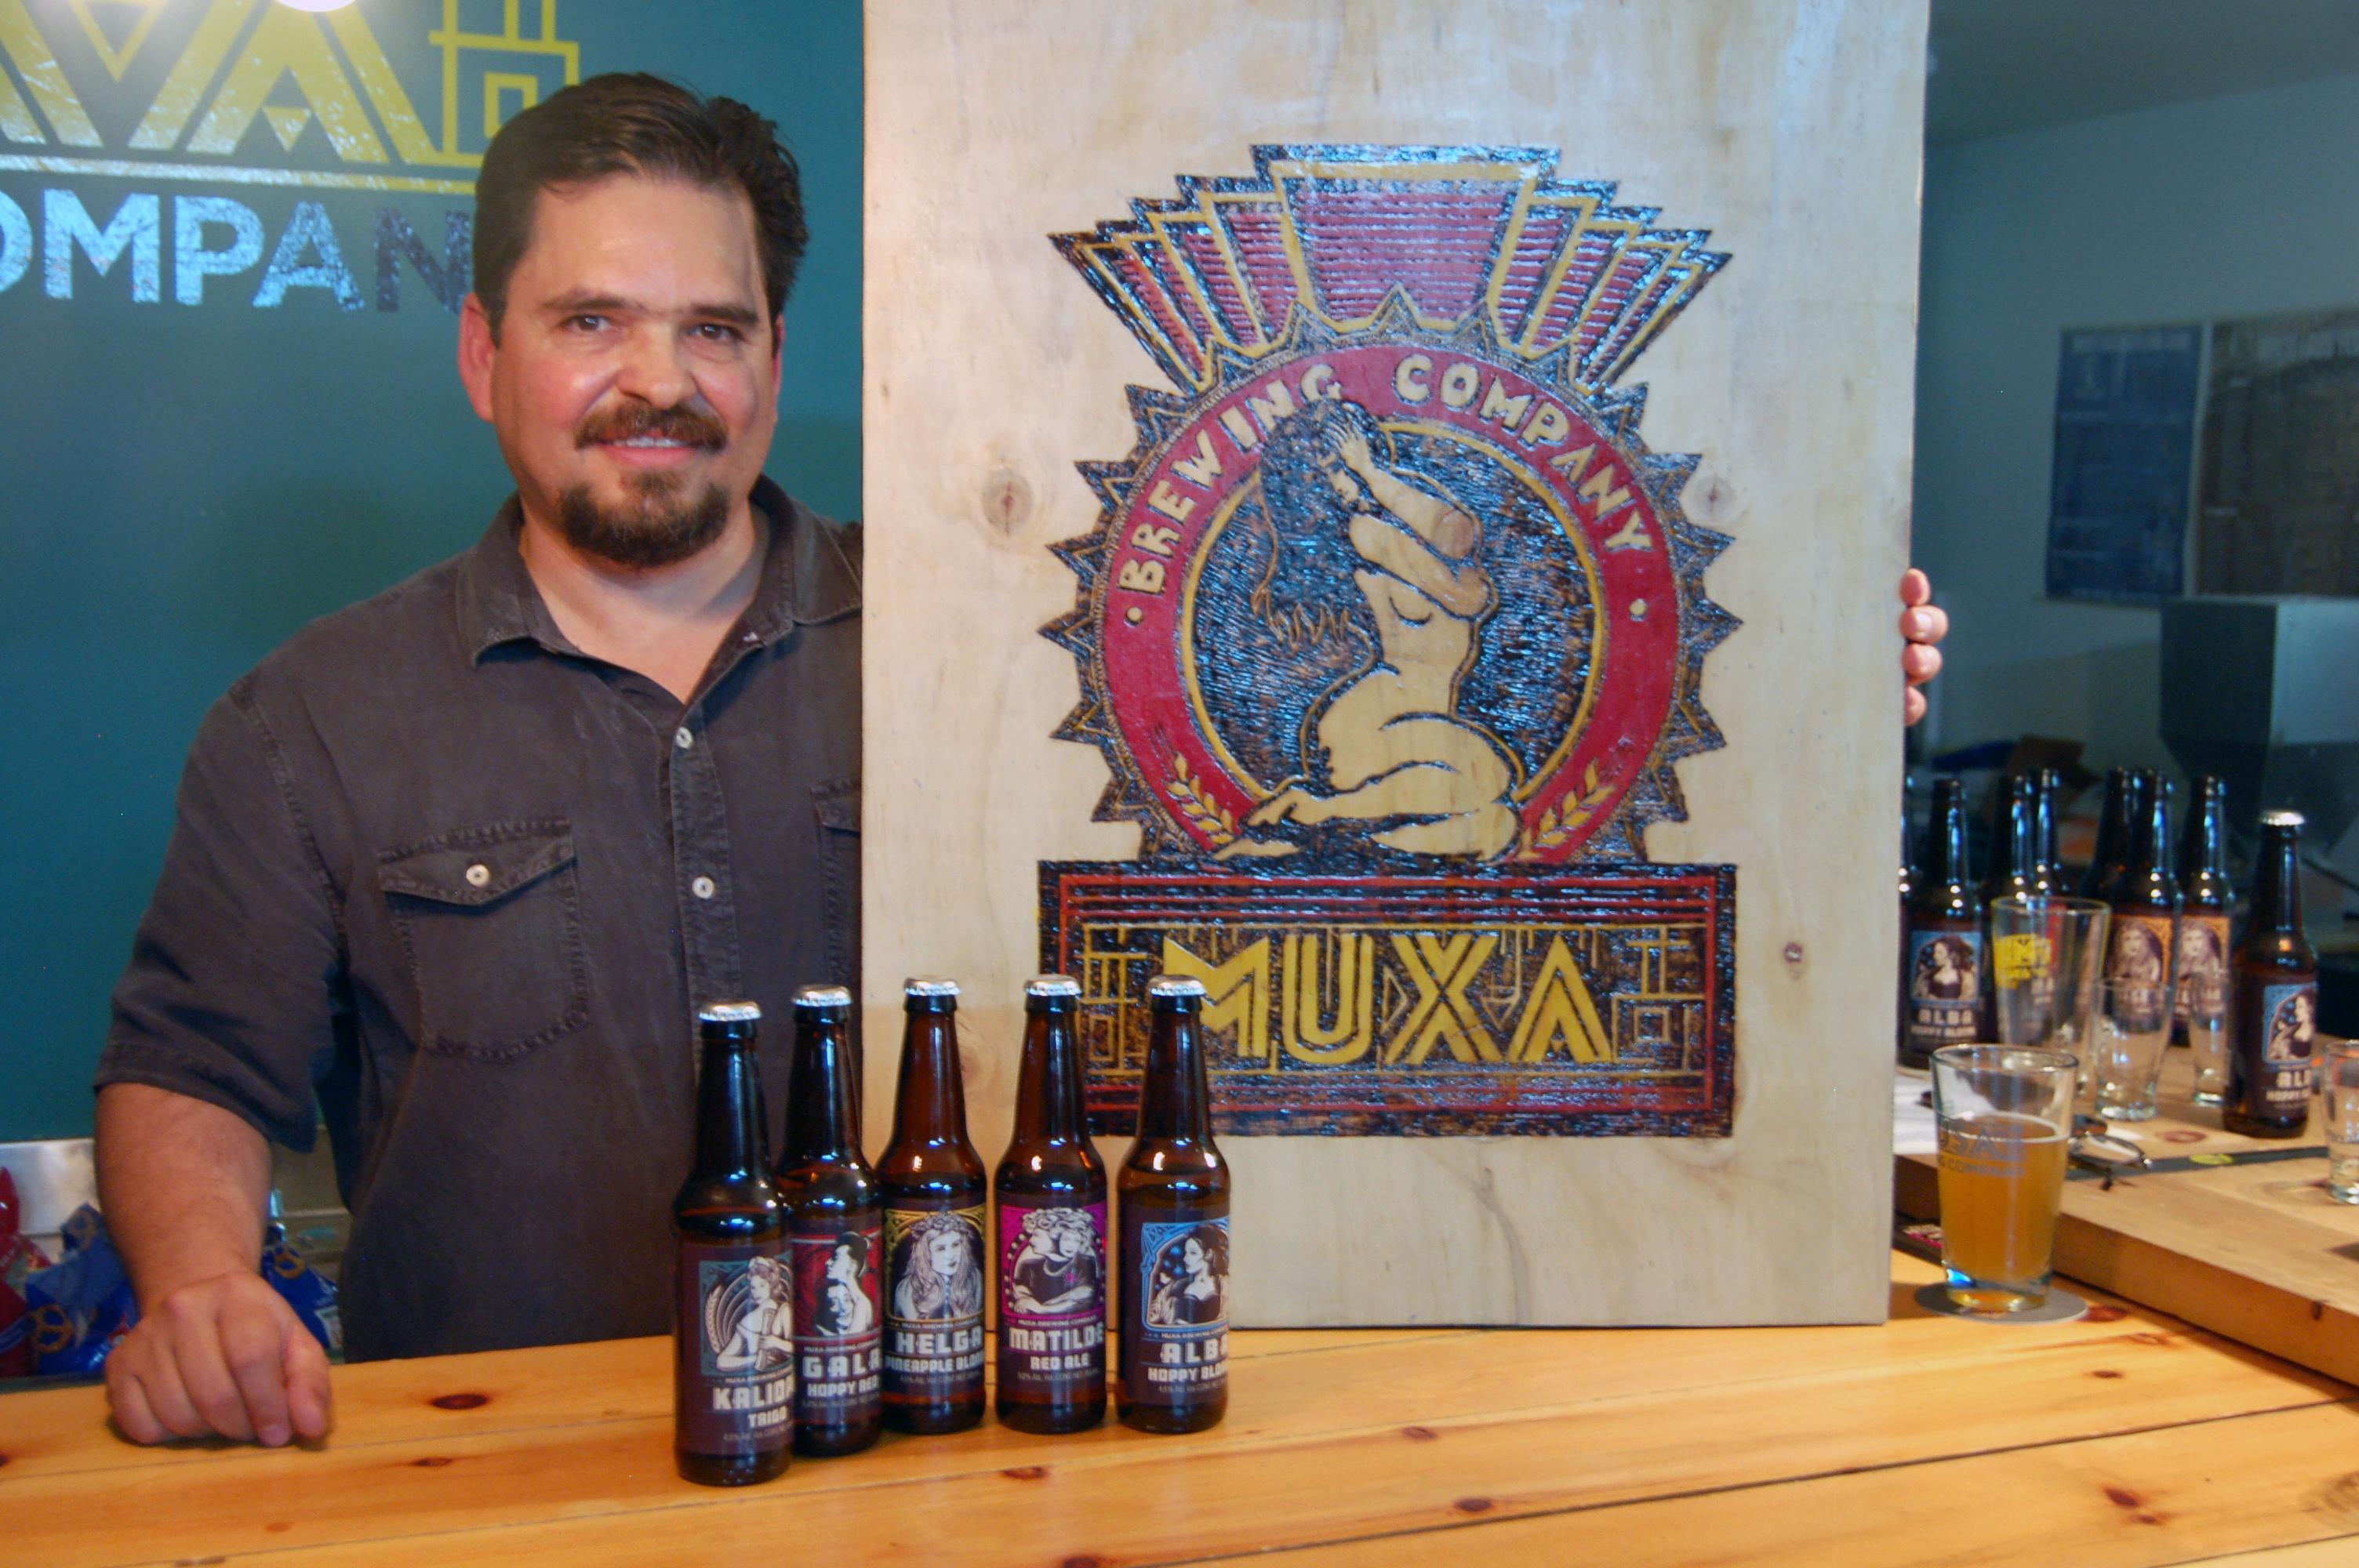 Owner Aleandro Rojas of Muxa, Mexicali, Baja California, Mexico